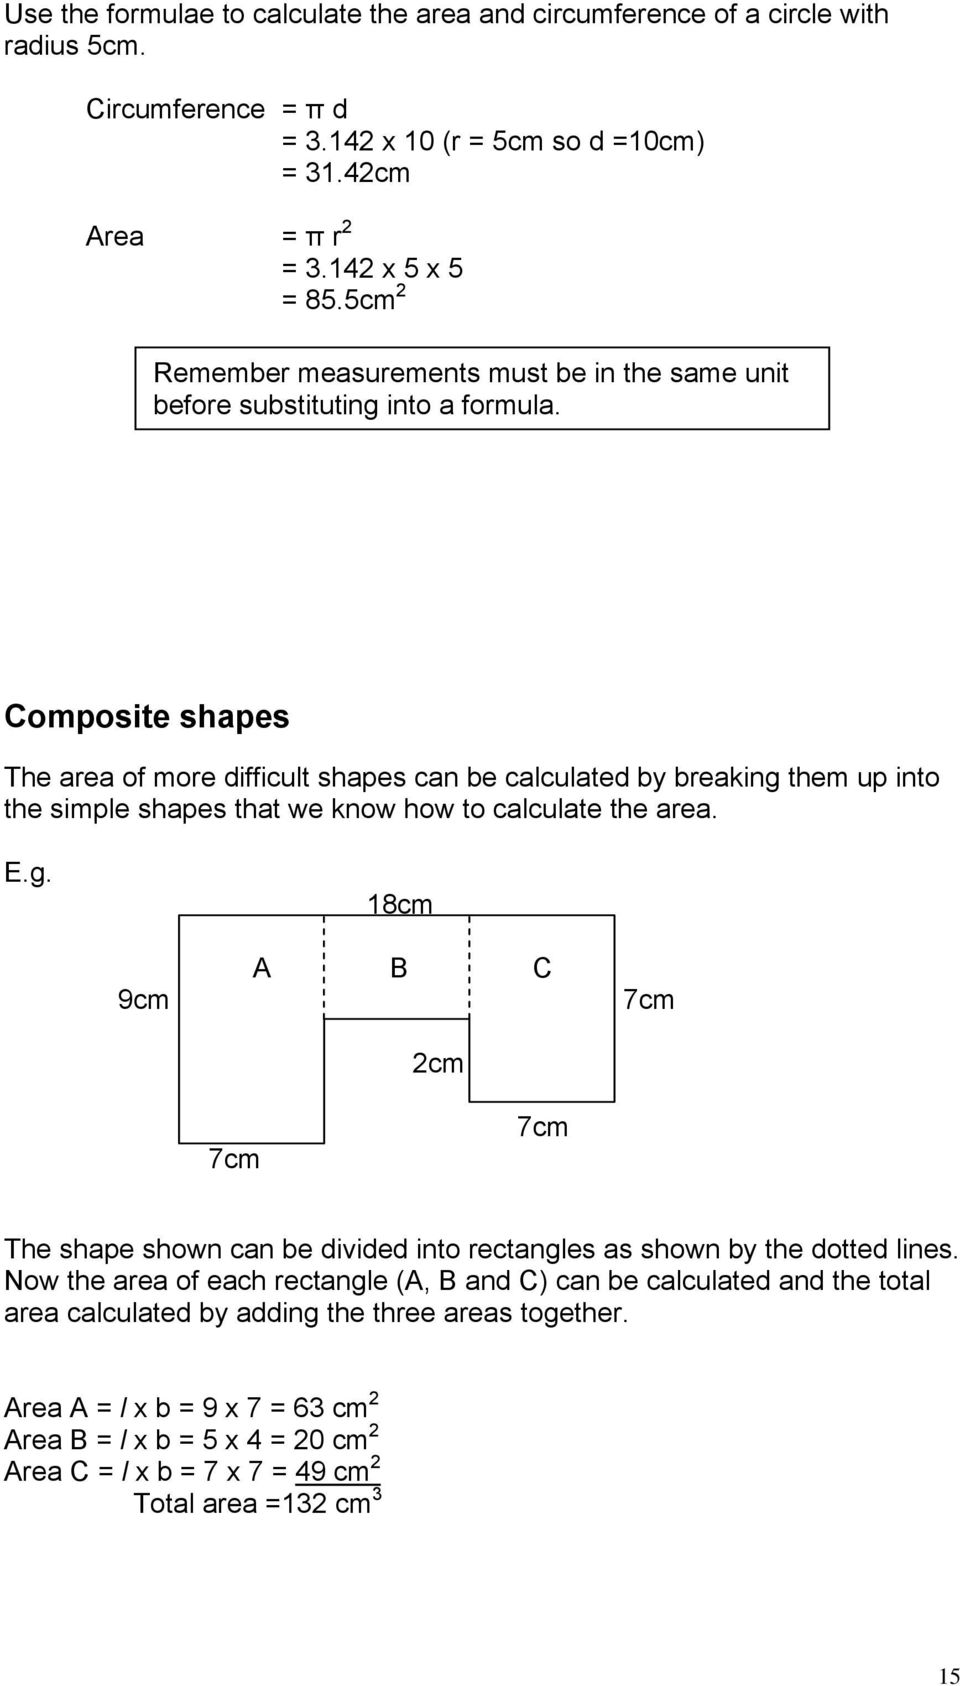 Composite shapes The area of more difficult shapes can be calculated by breaking them up into the simple shapes that we know how to calculate the area. E.g. 18cm 9cm A B C 2cm 7cm 7cm 7cm The shape shown can be divided into rectangles as shown by the dotted lines.